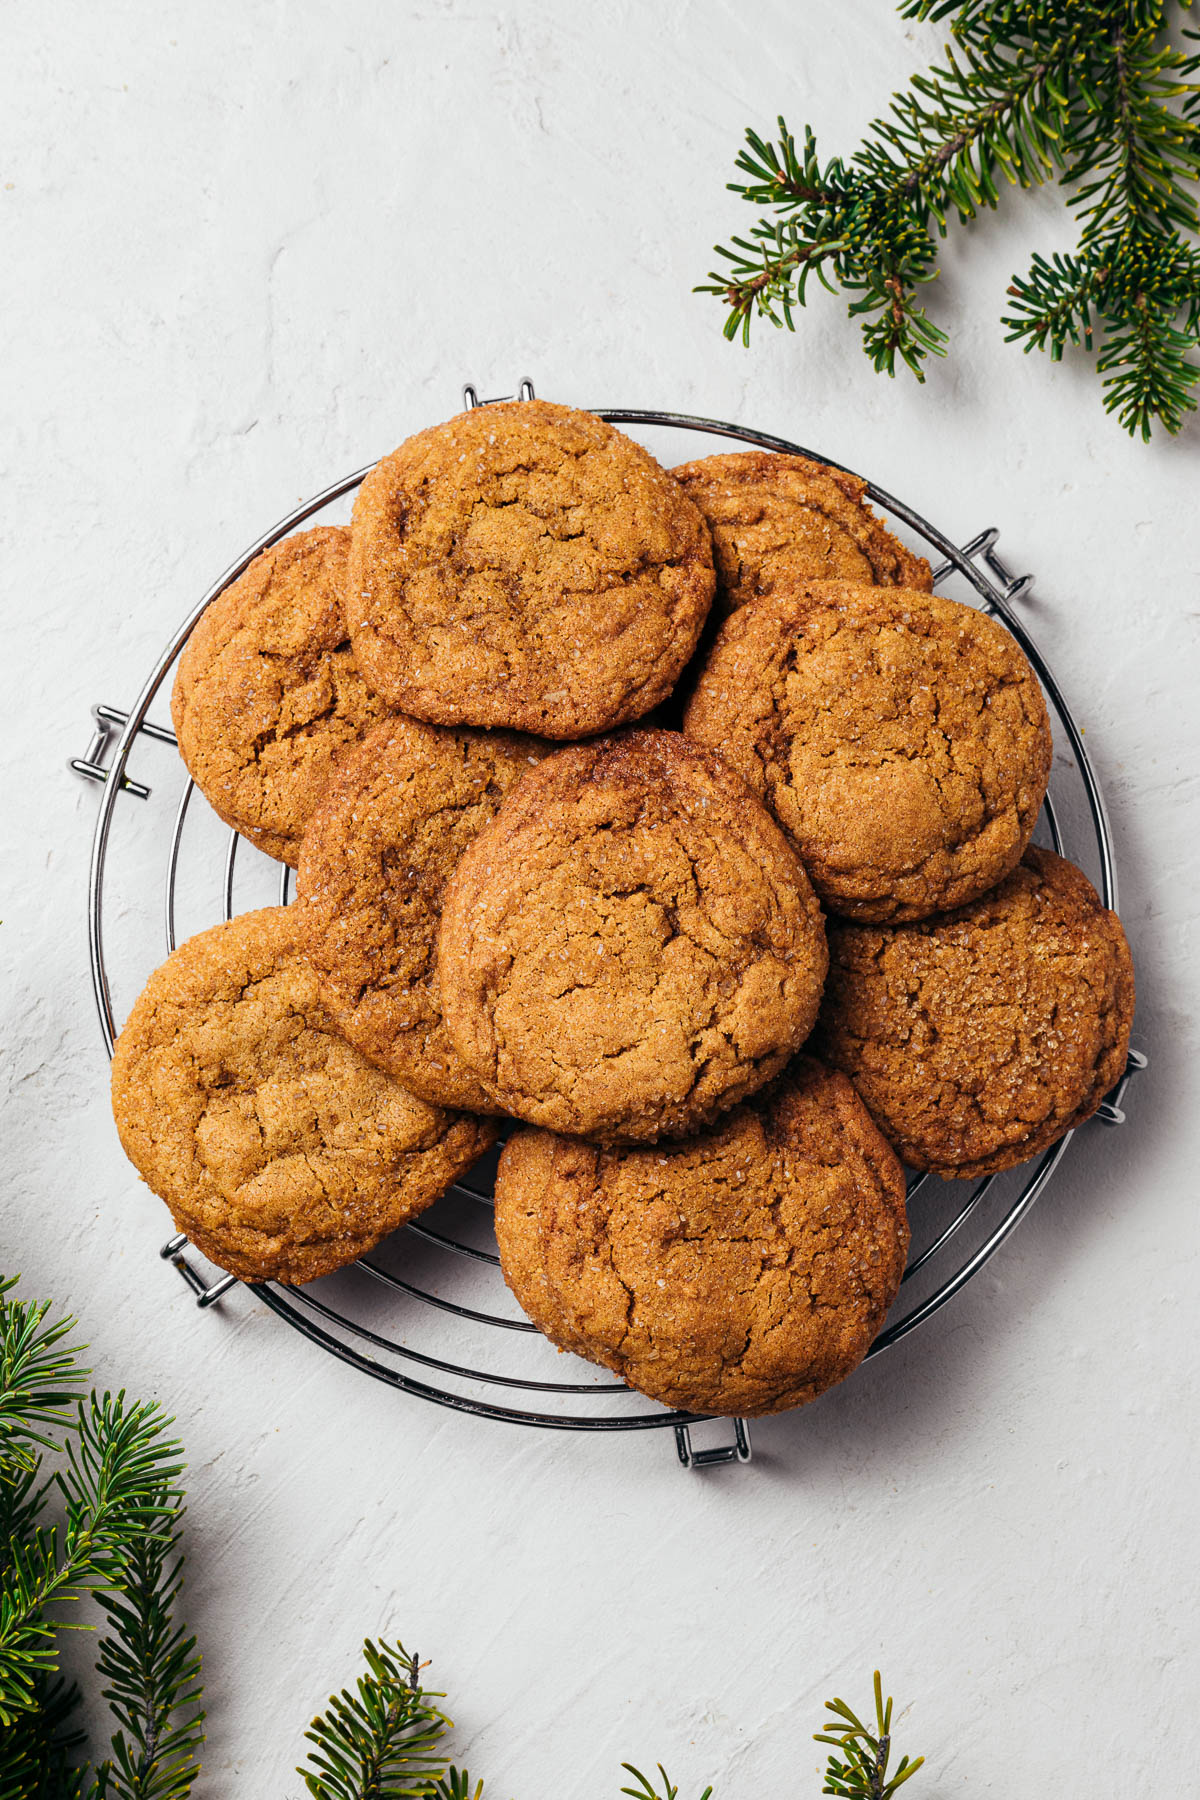 CoSugar & spice cookies on a round cooling rack with evergreen branches peeking in the corners.